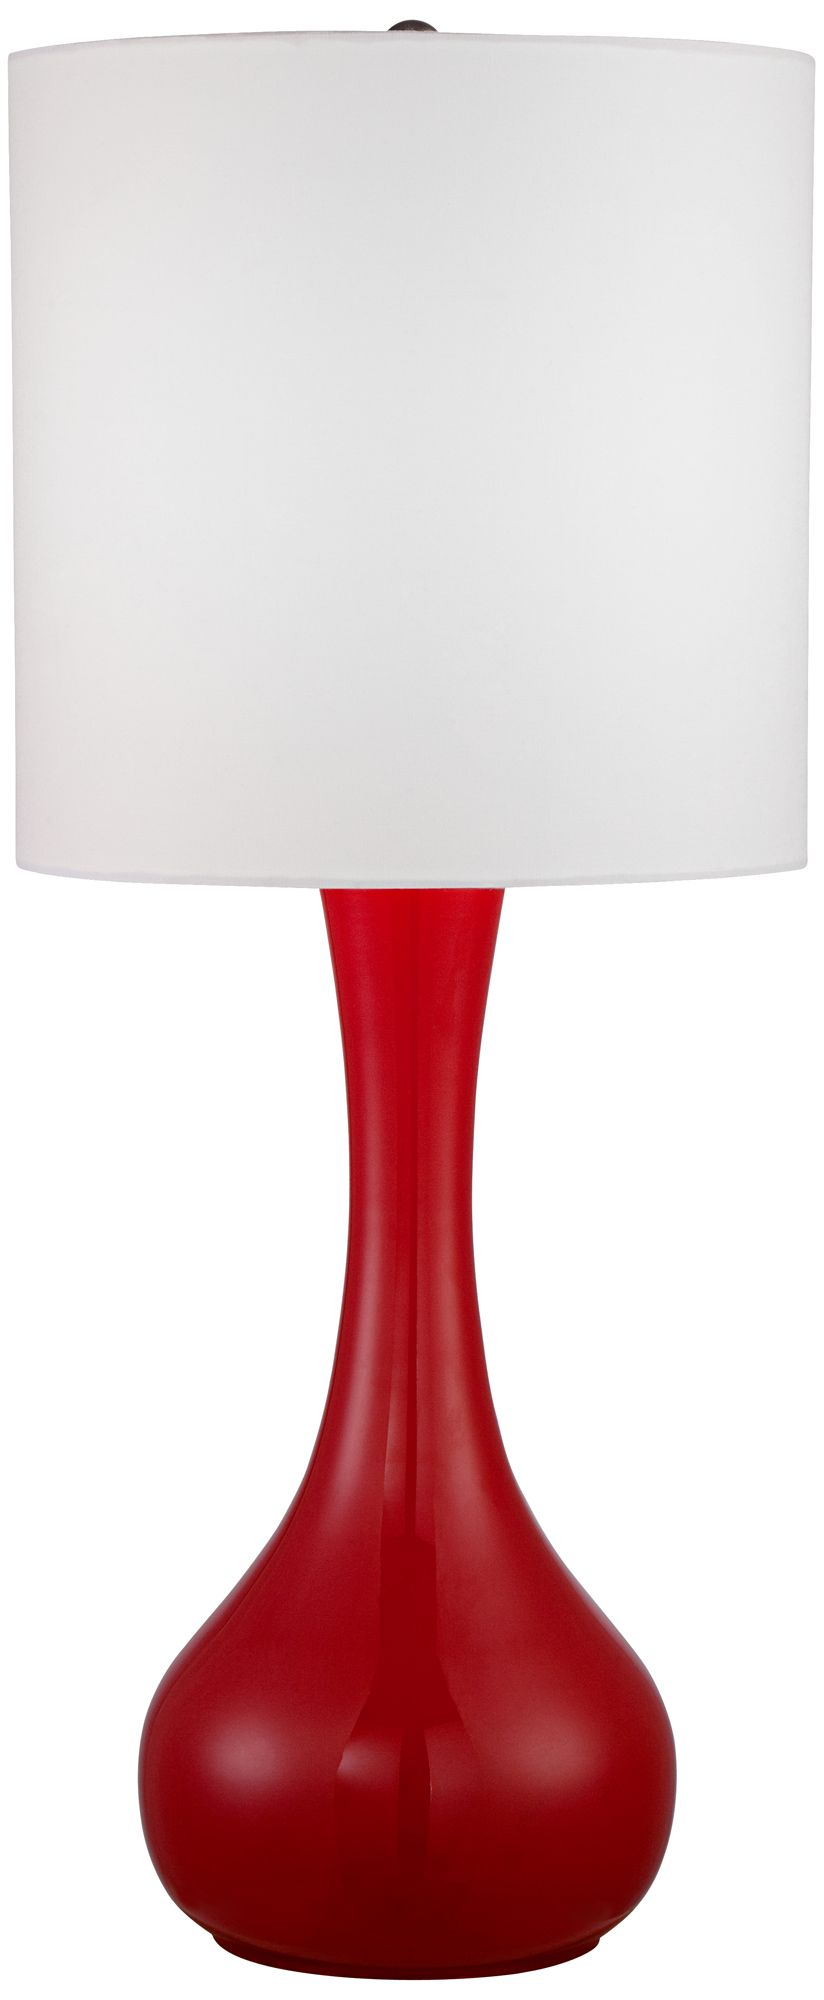 Bright Red Droplet Table Lamp